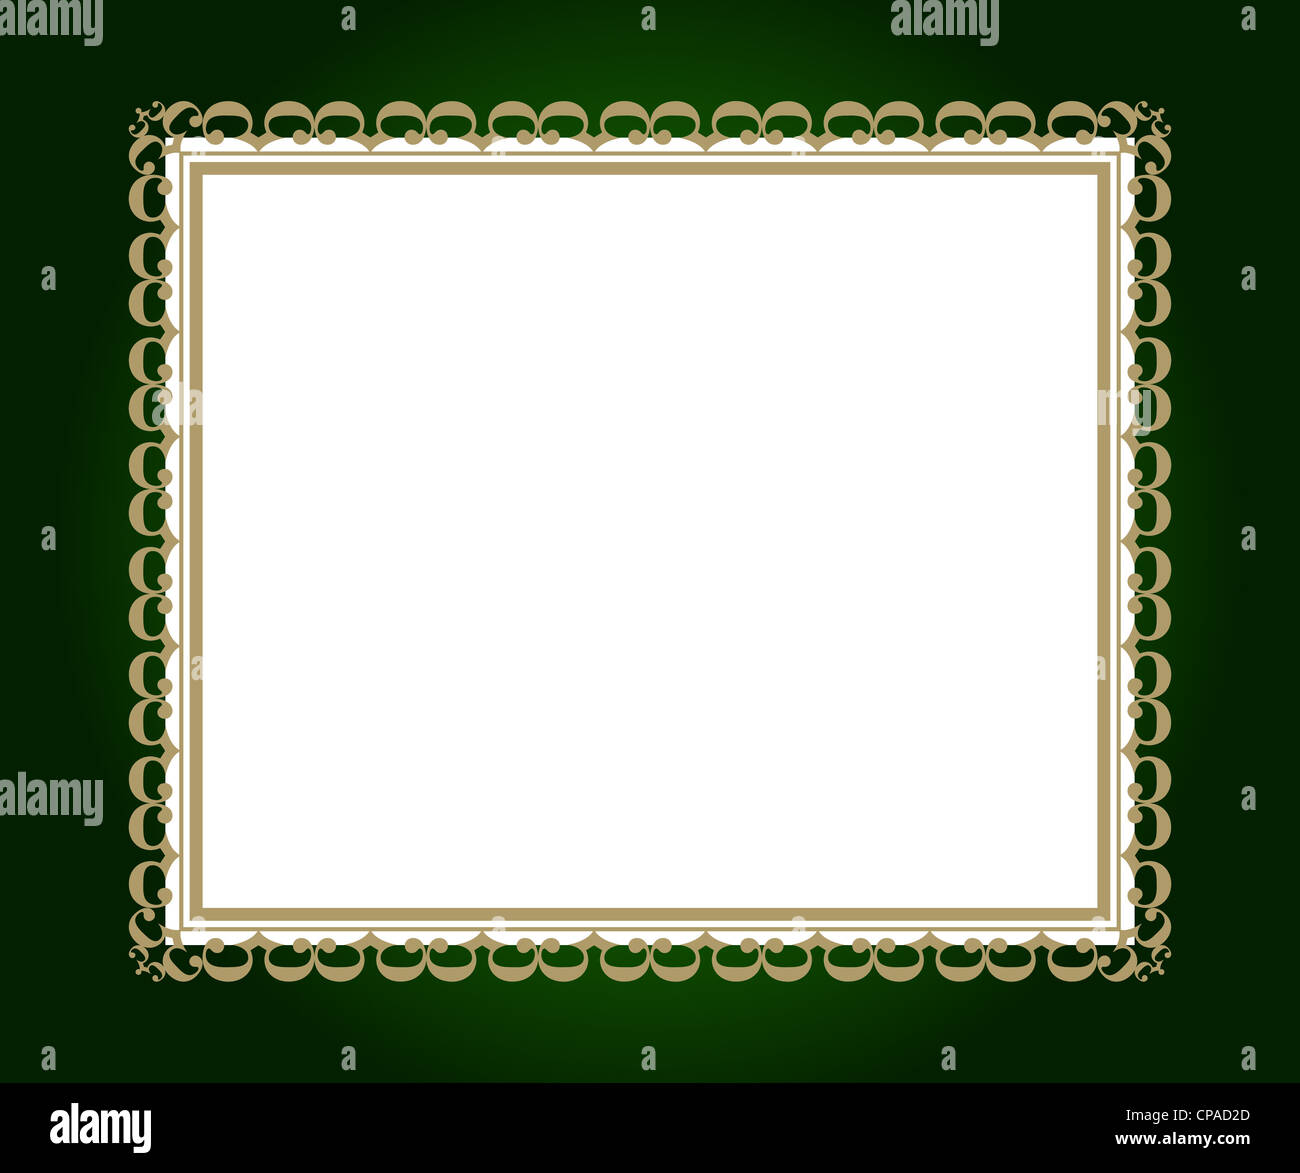 Artistic frame on green with white border Stock Photo